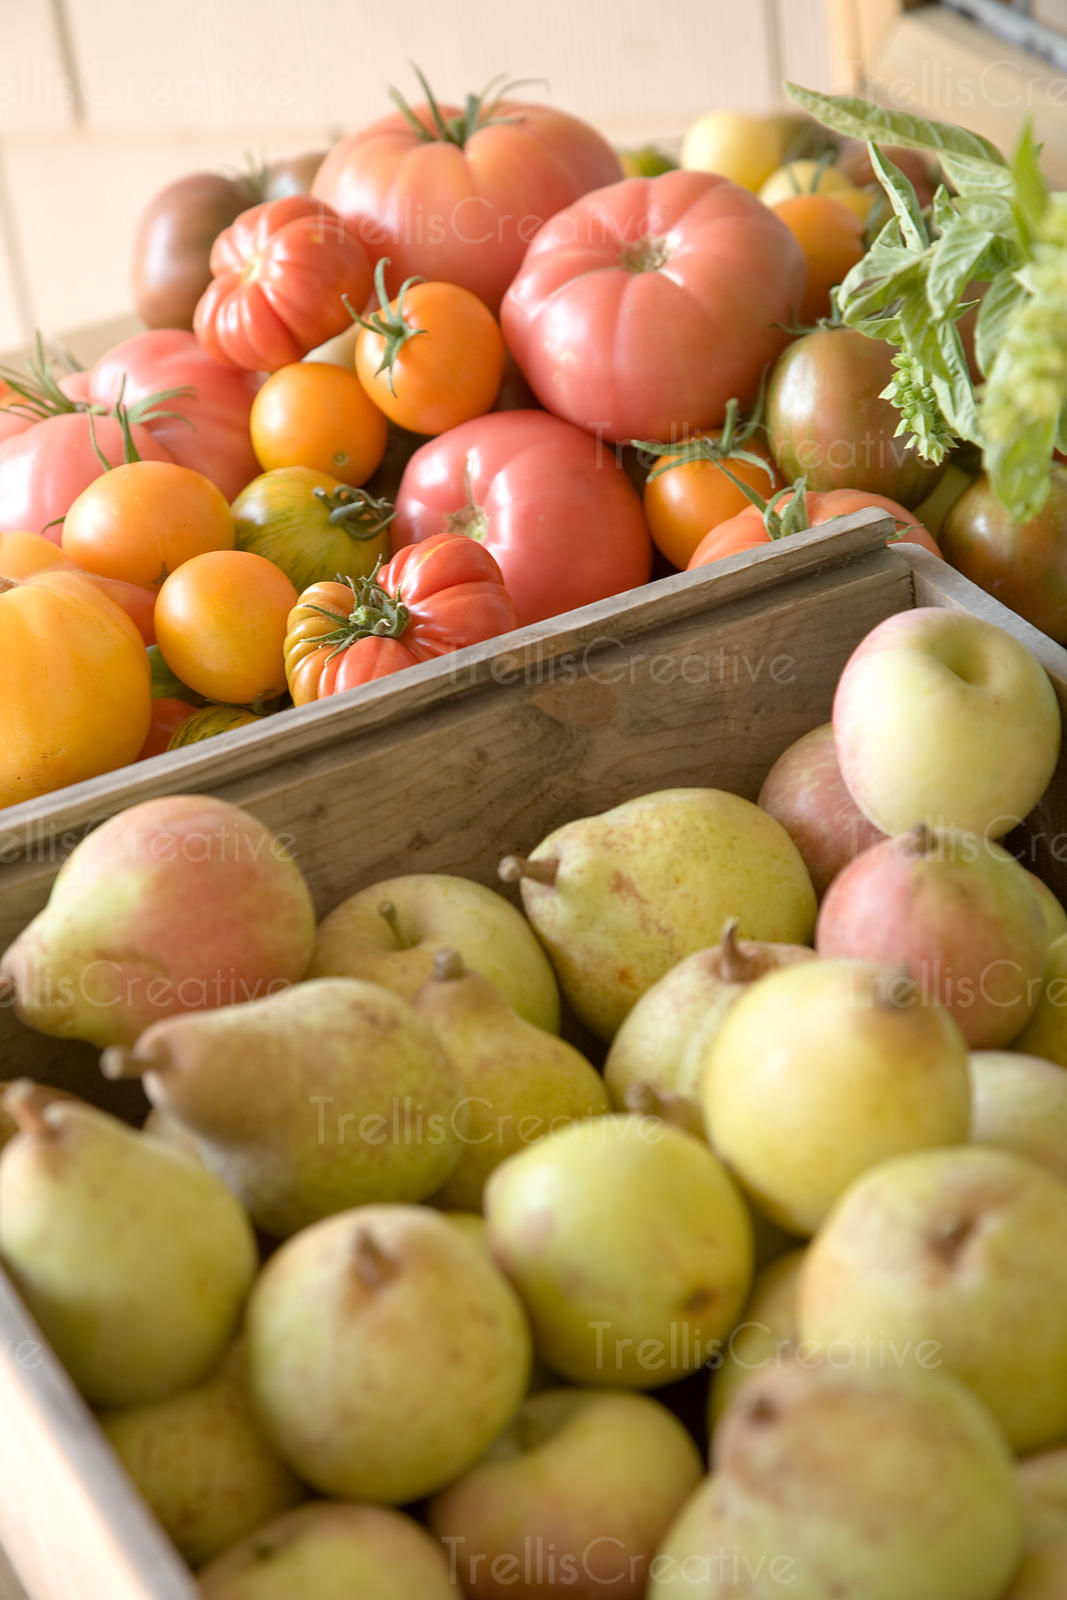 Colorful heirloom tomatoes in wooden crate